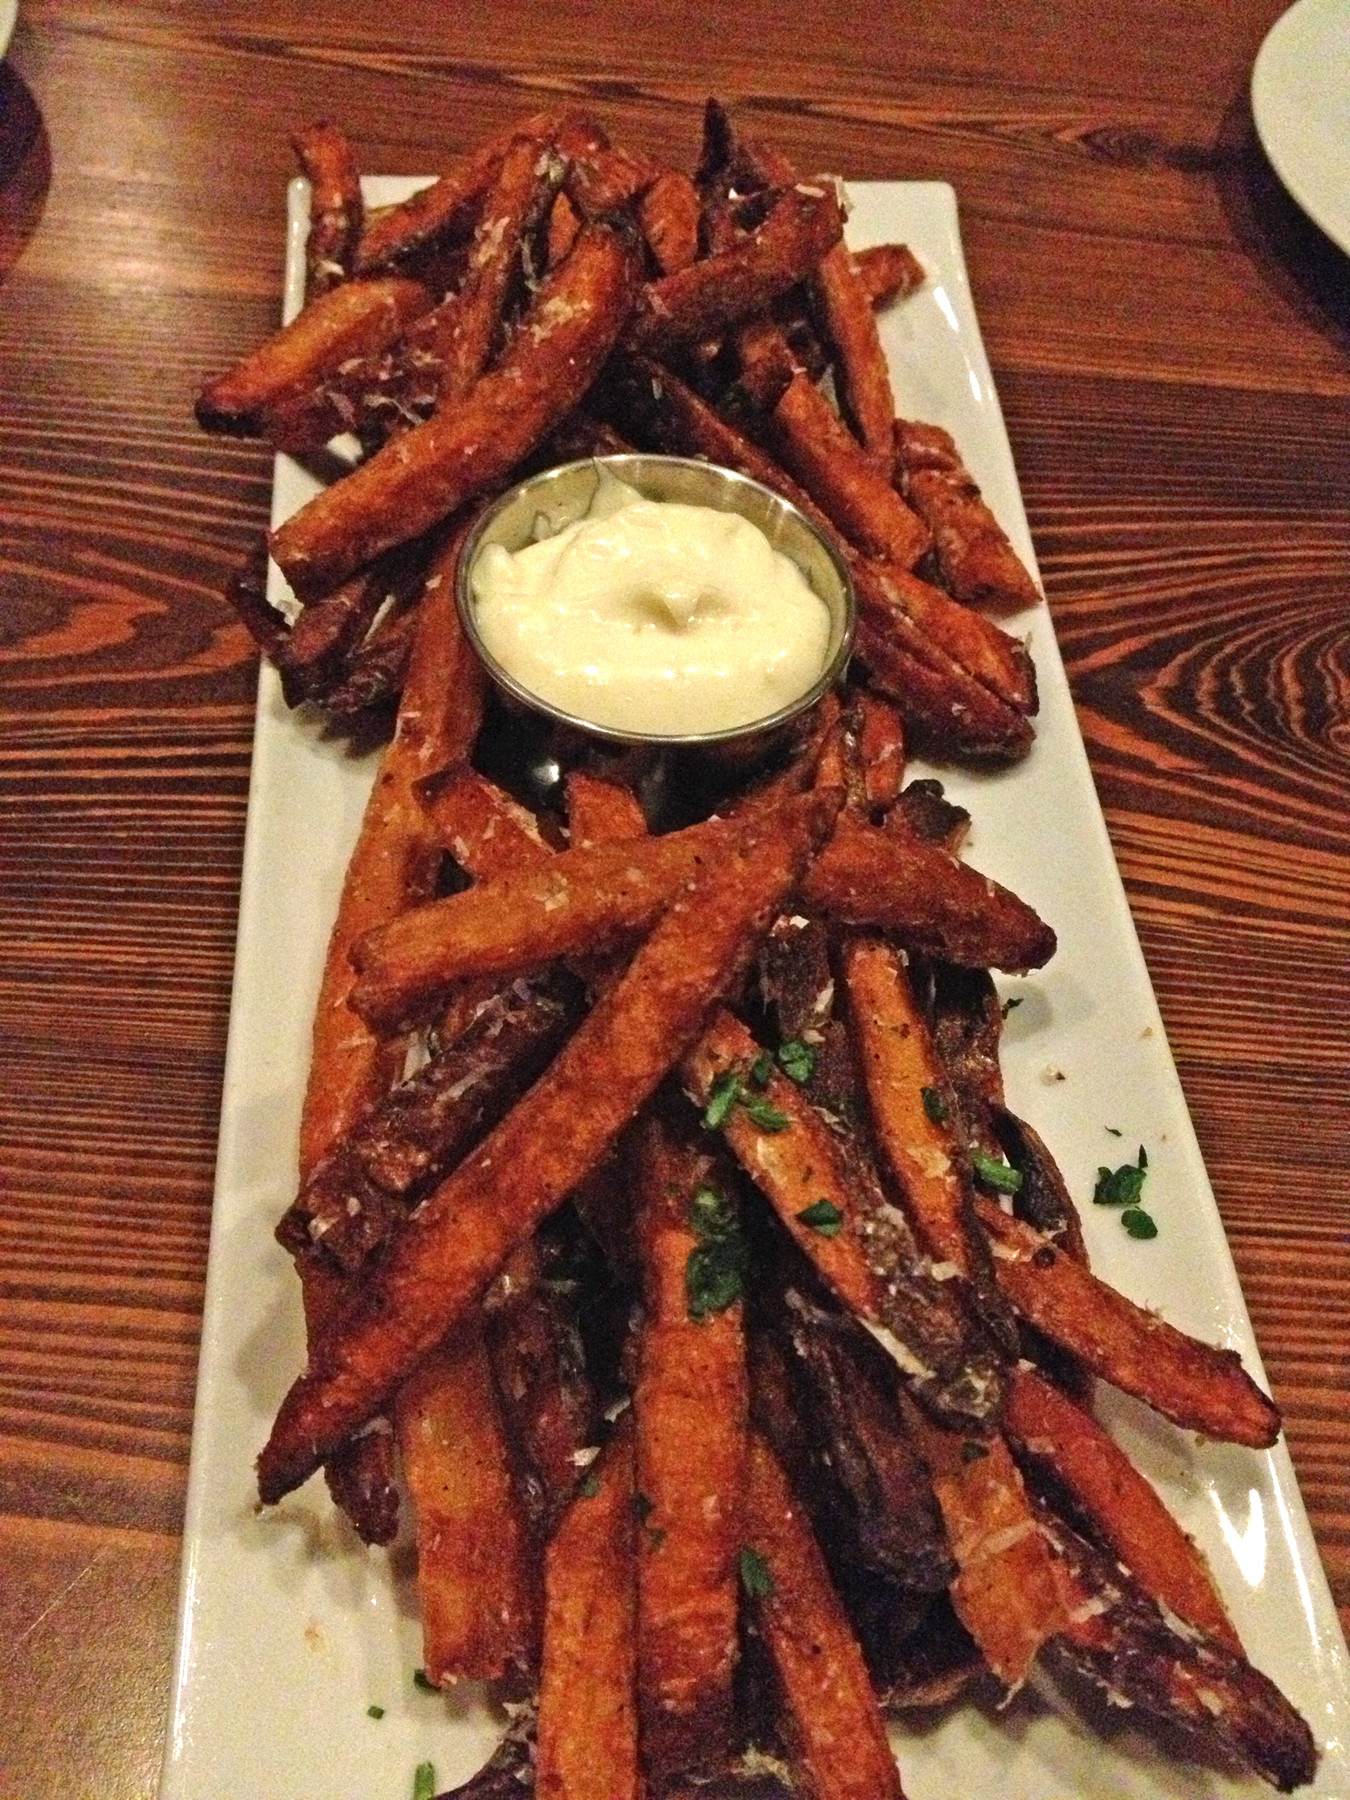 The French fries, with freshly grated parmesan, truffle oil and creamy garlicky aioli, are delightfully crisp.